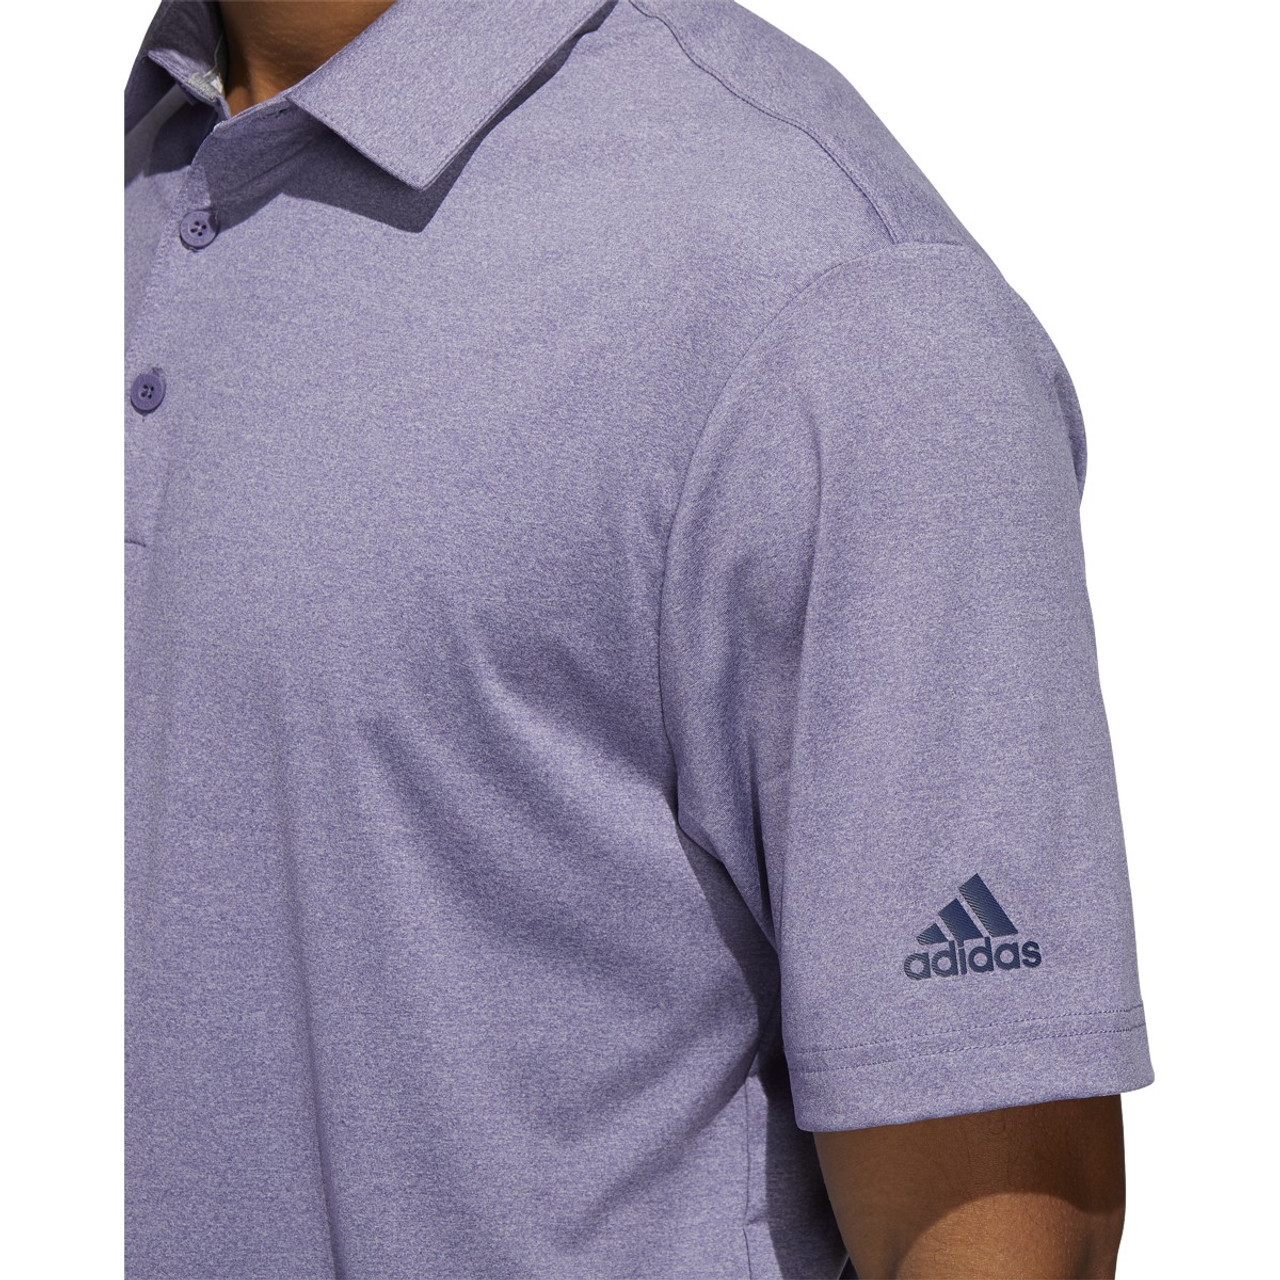 Adidas Ultimate 365 2.0 Heather Polo - Tech Purple